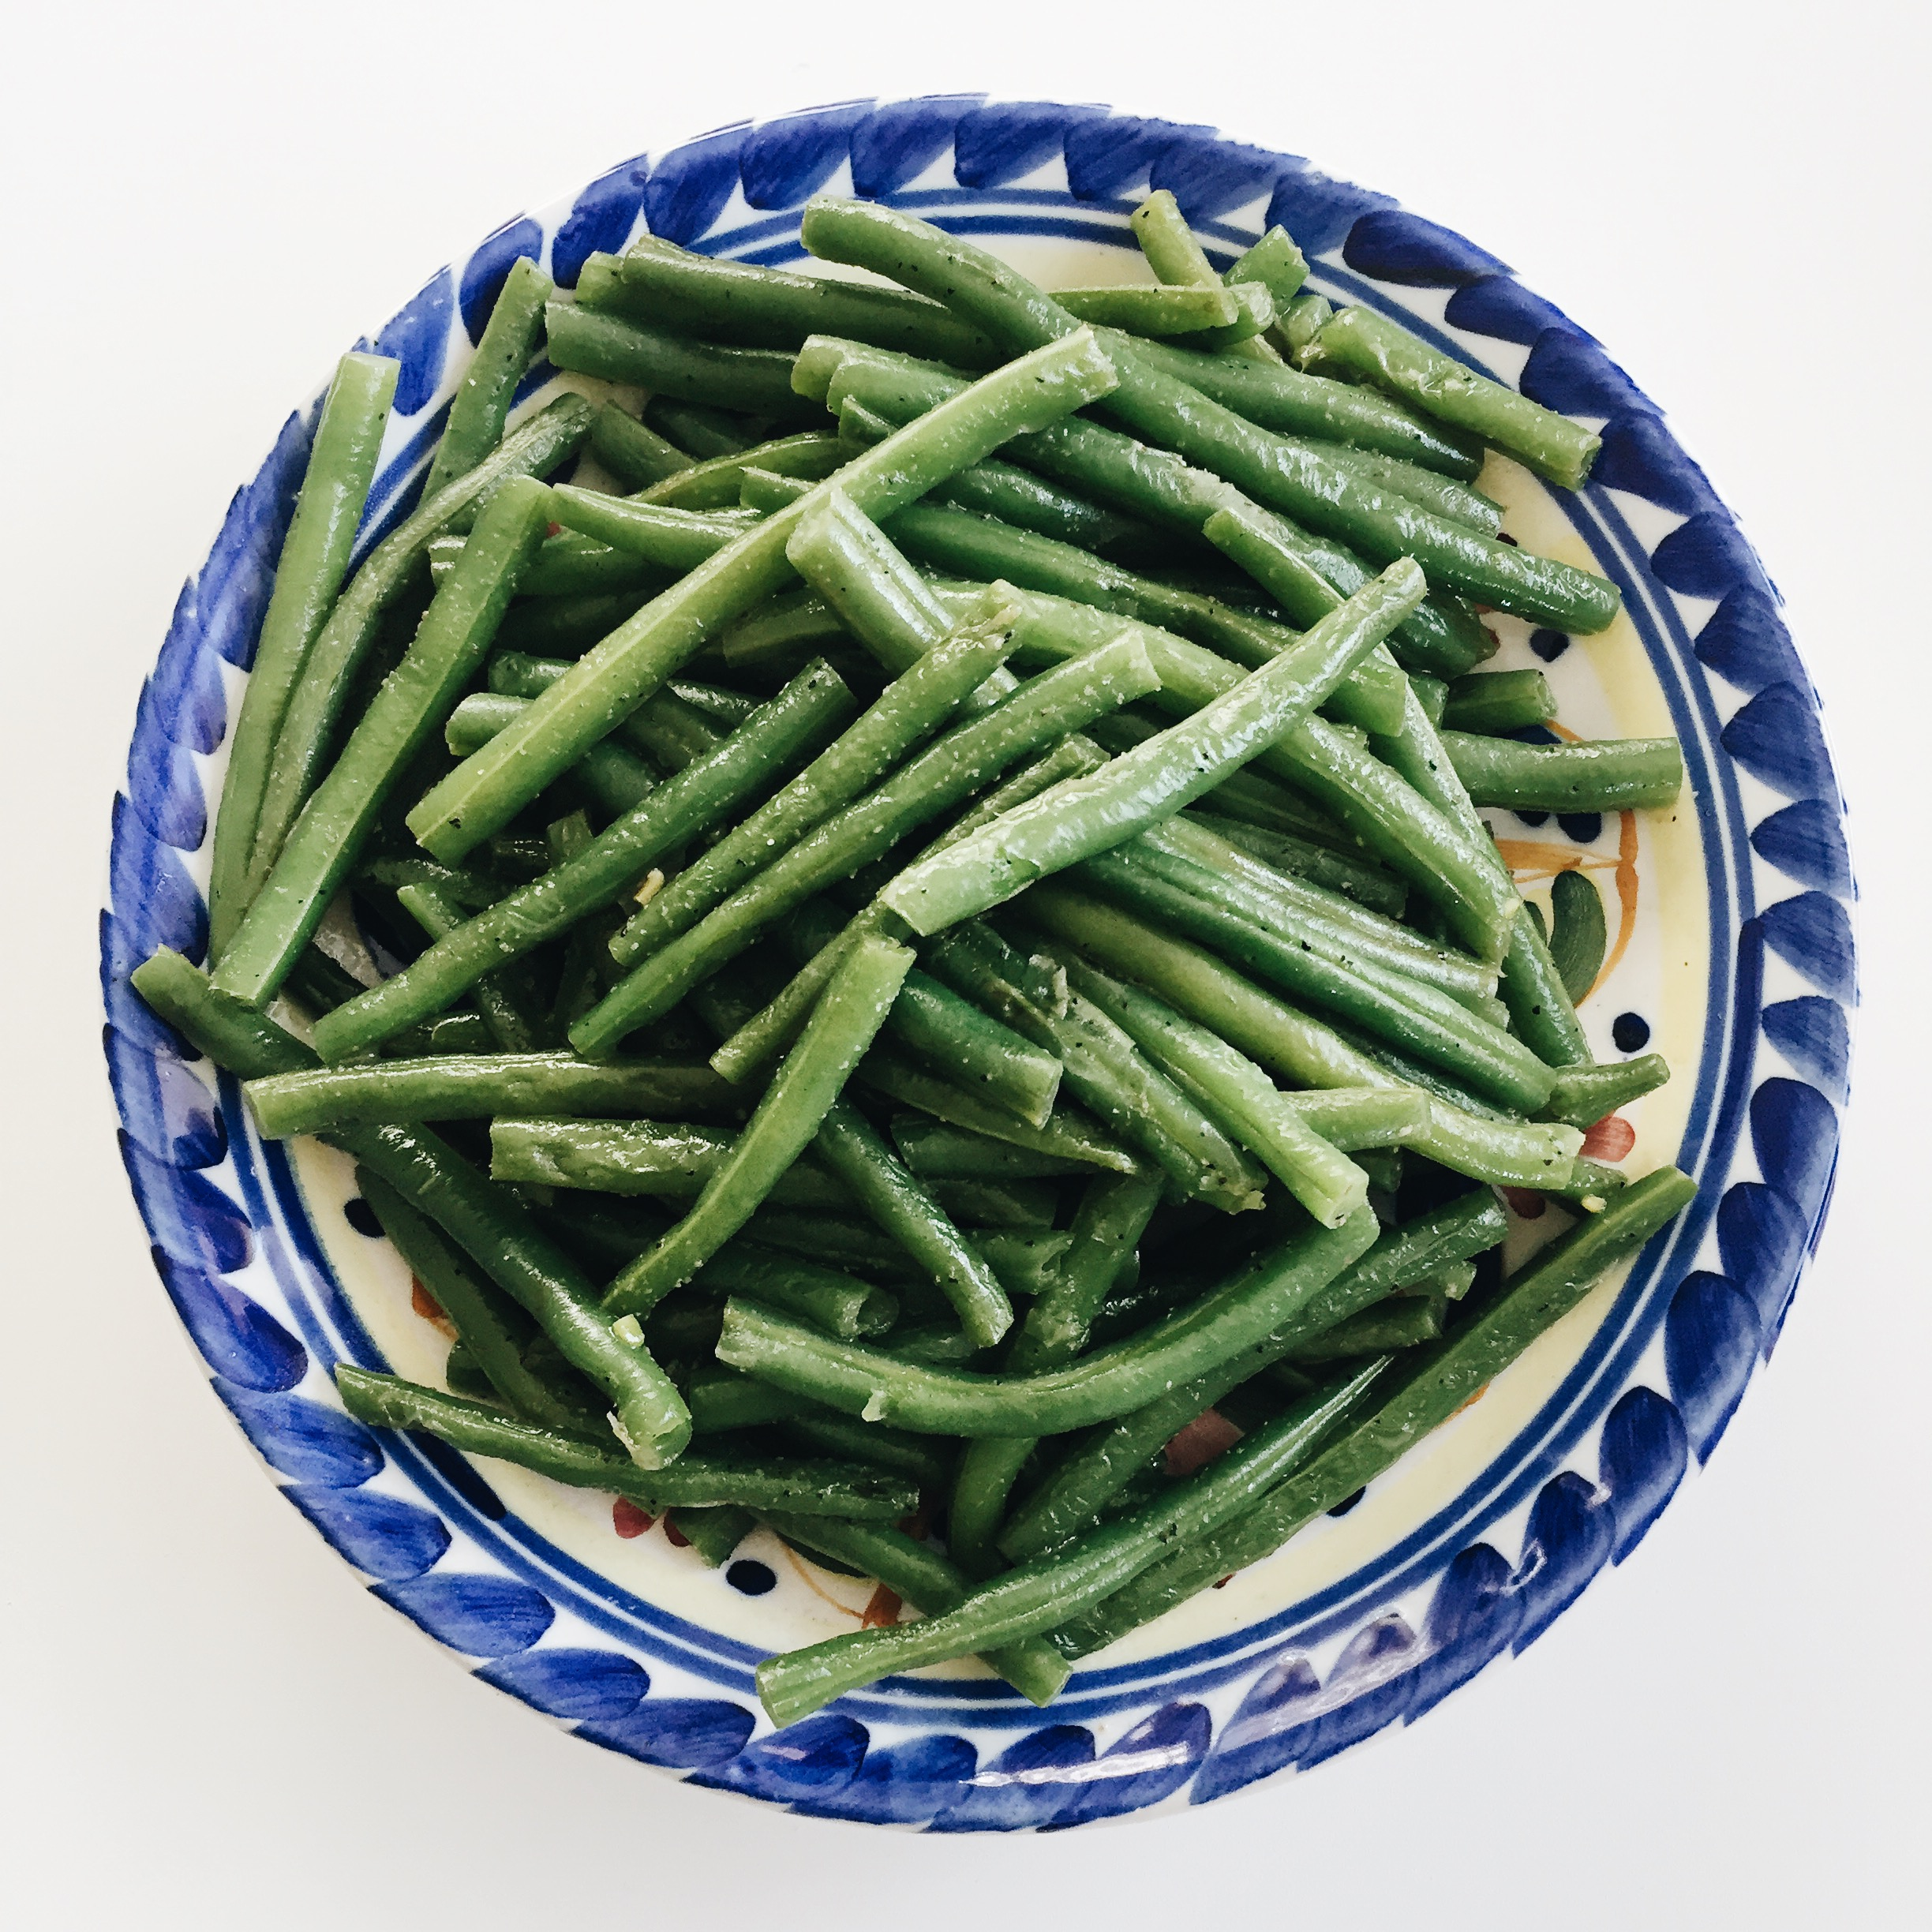 Lunch: stir fry green beans.